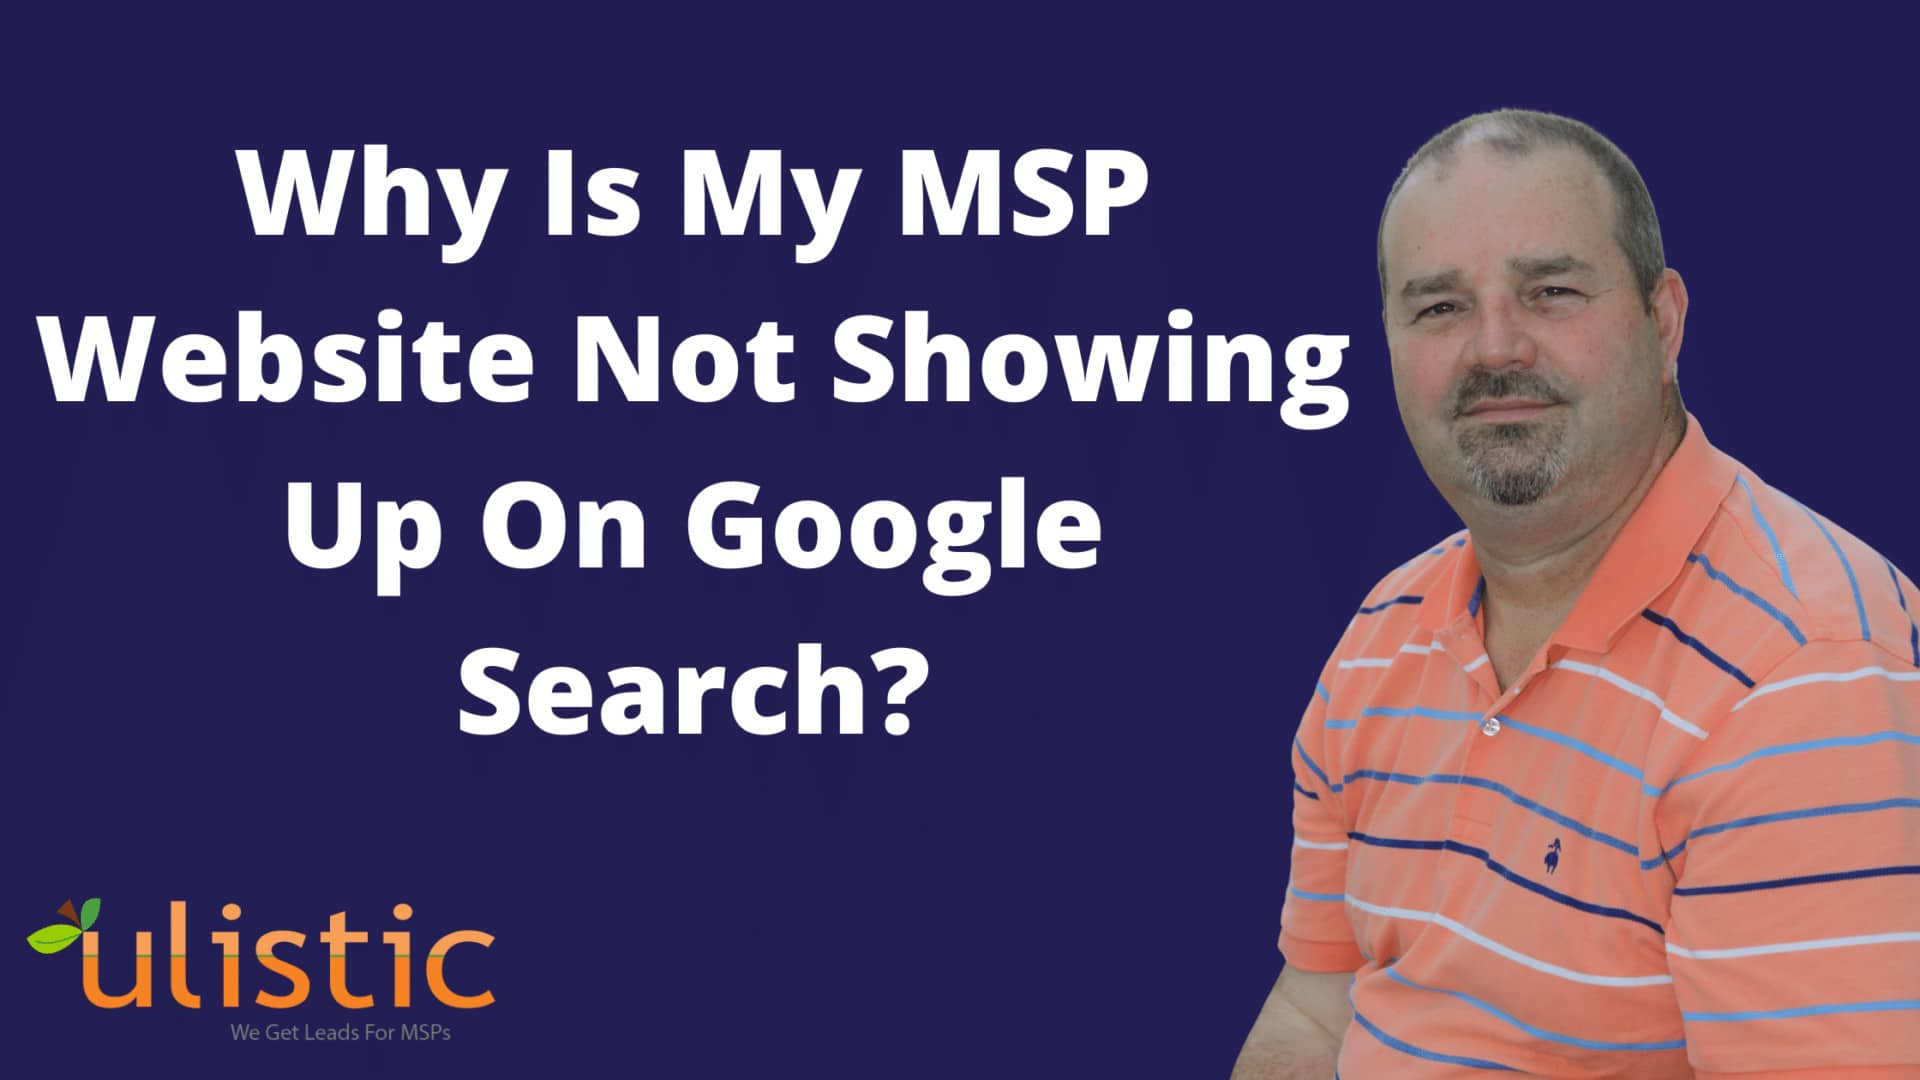 Why Is My MSP Website Not Showing Up On Google Search?